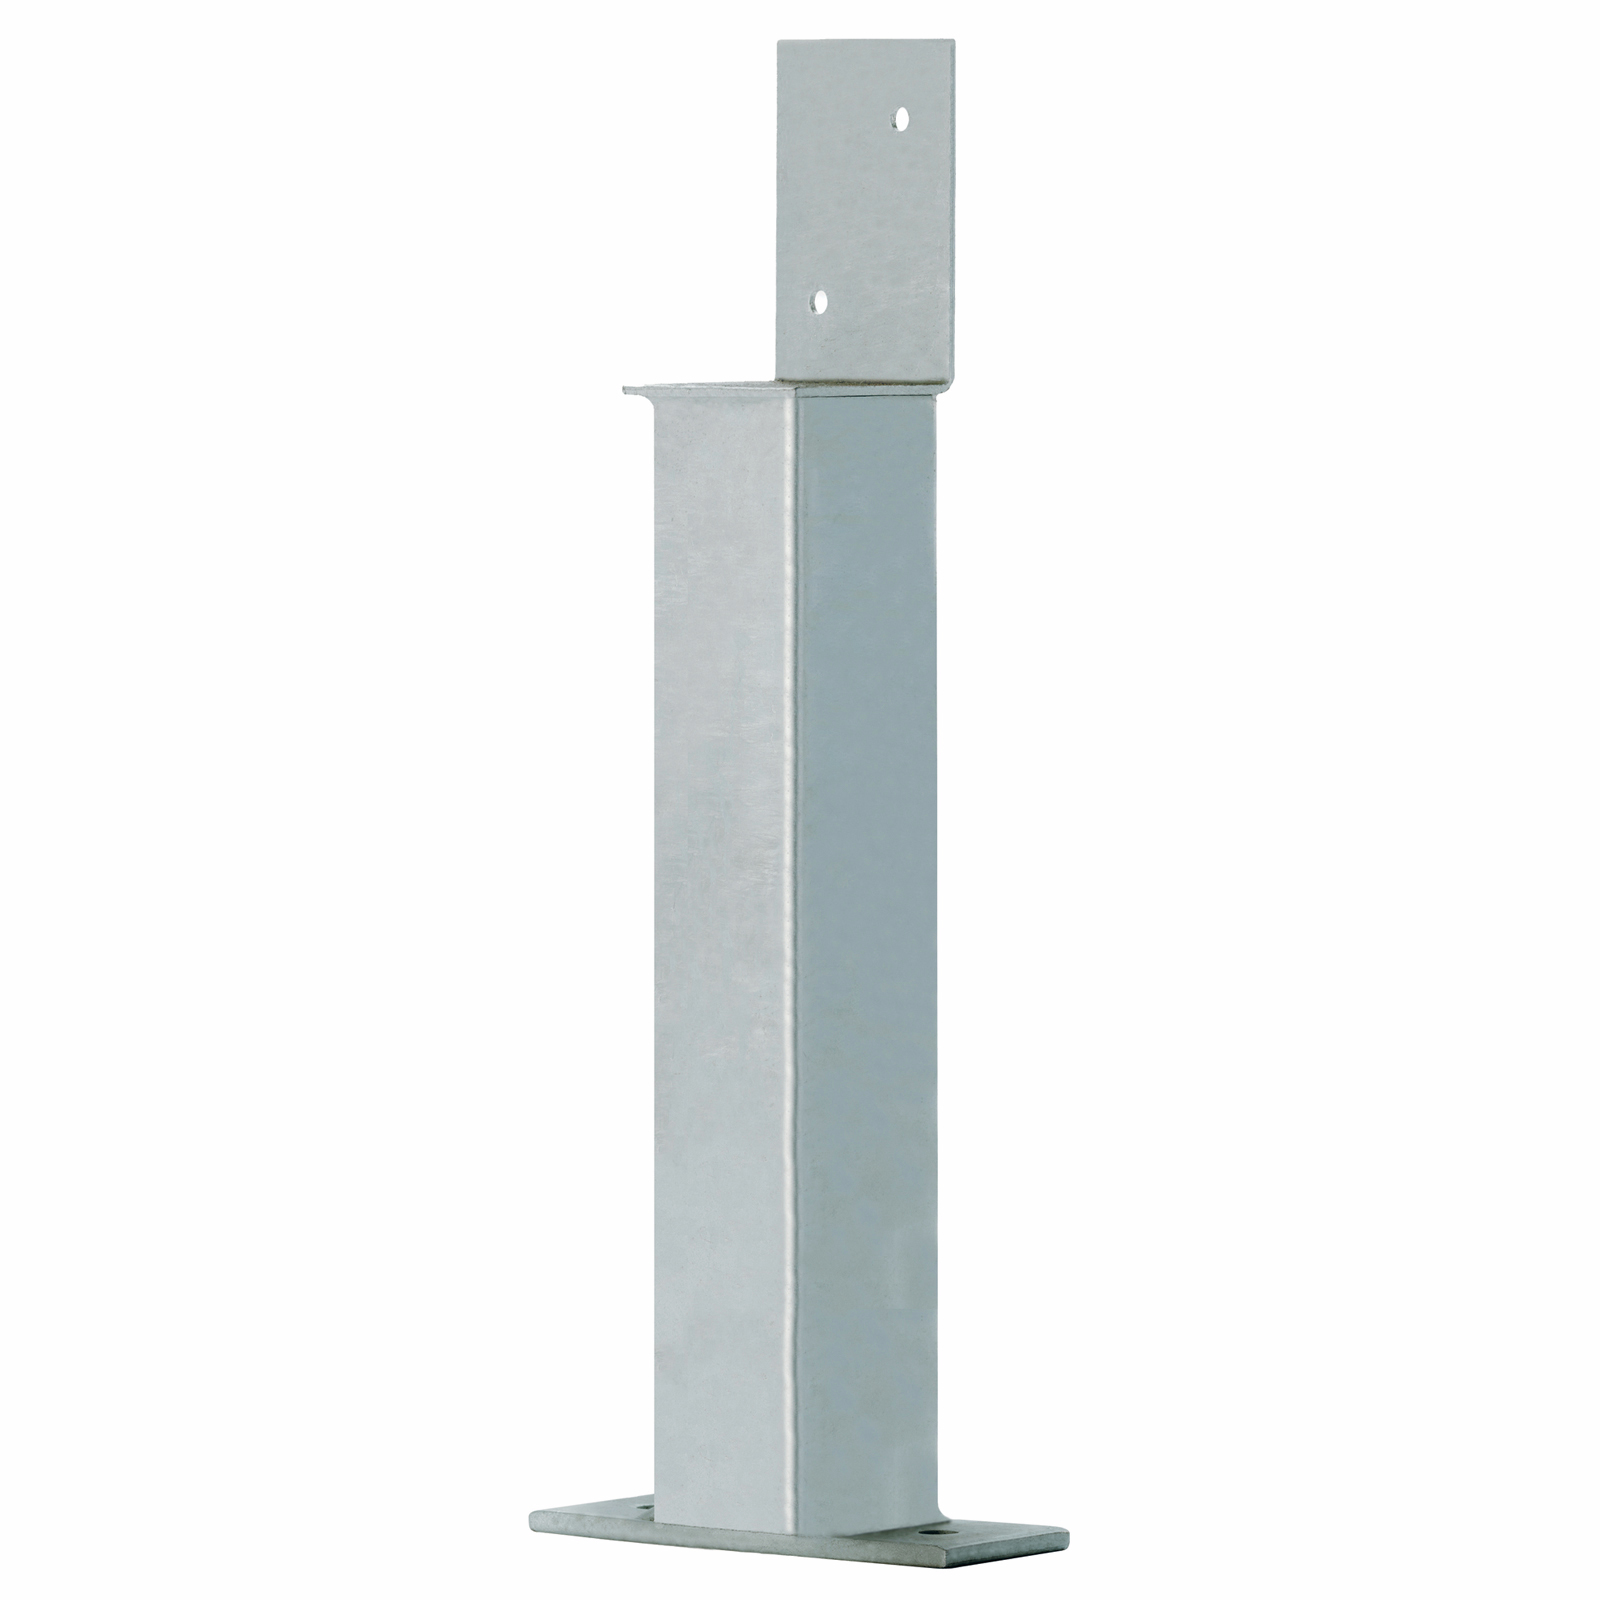 Uni-Pier 75 x 75 x 1600mm Post With Telescopic Head Without Antcap